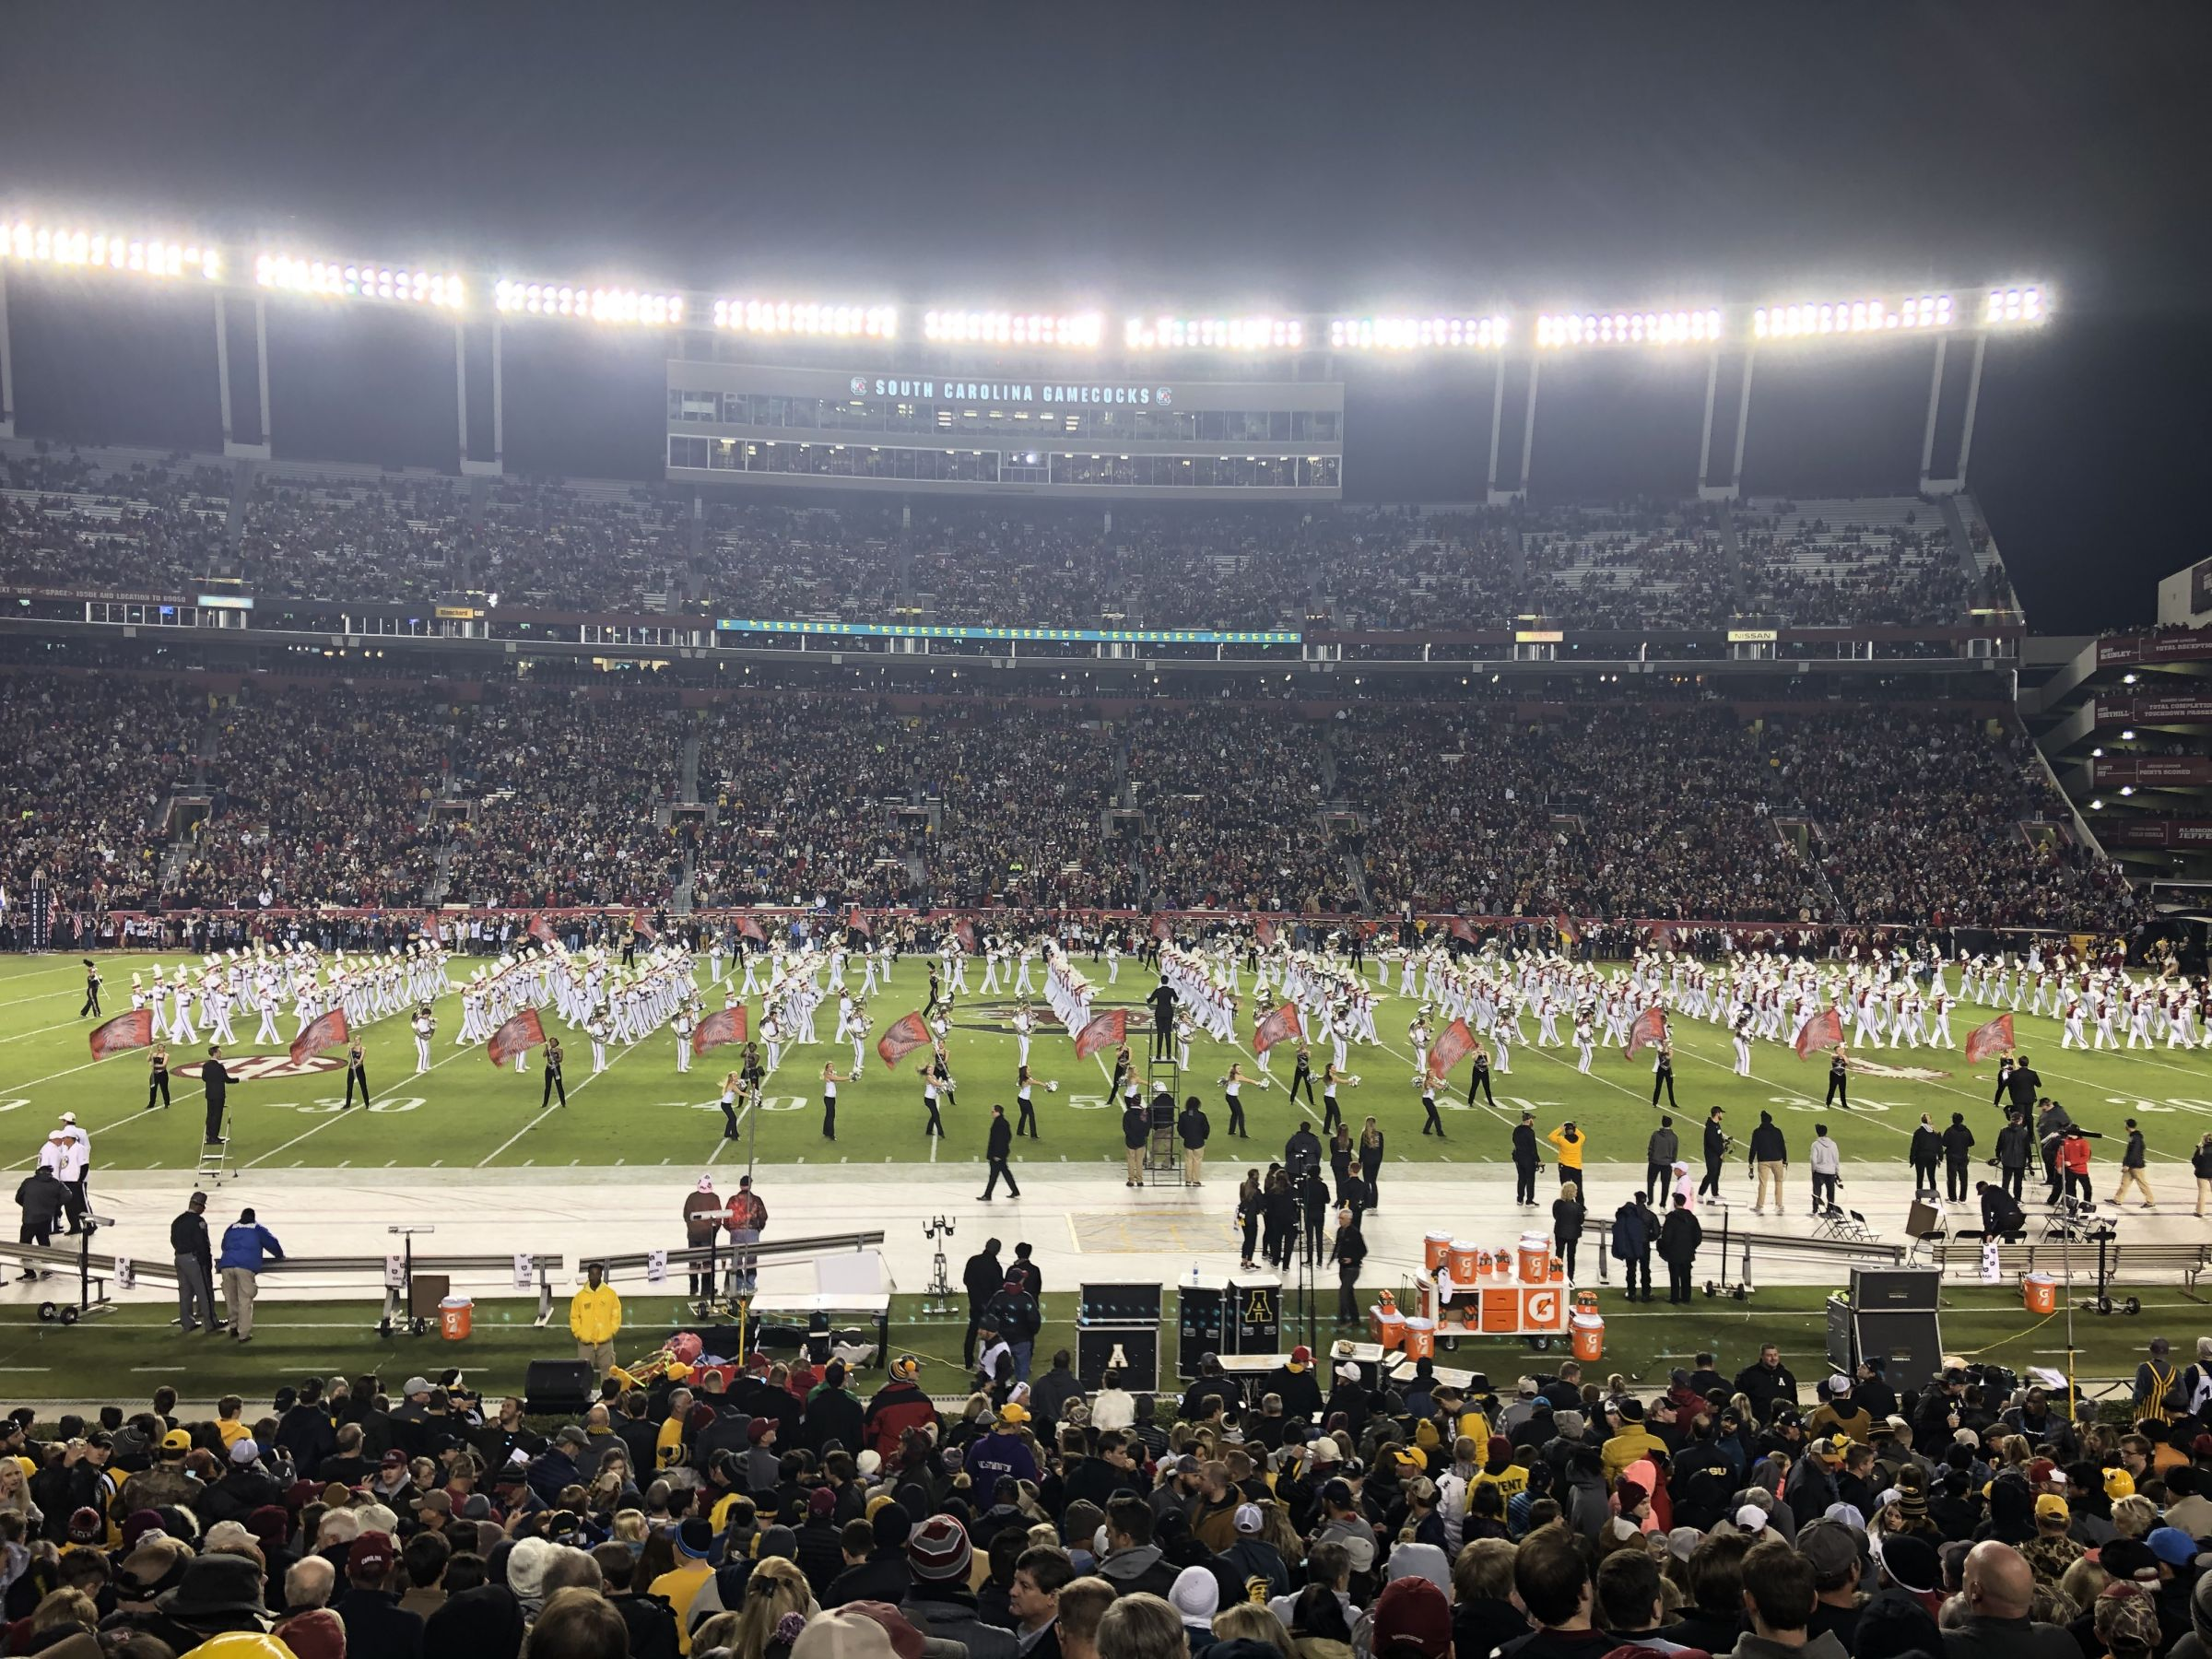 Seat View for Williams-Brice Stadium Section 21, Row 22